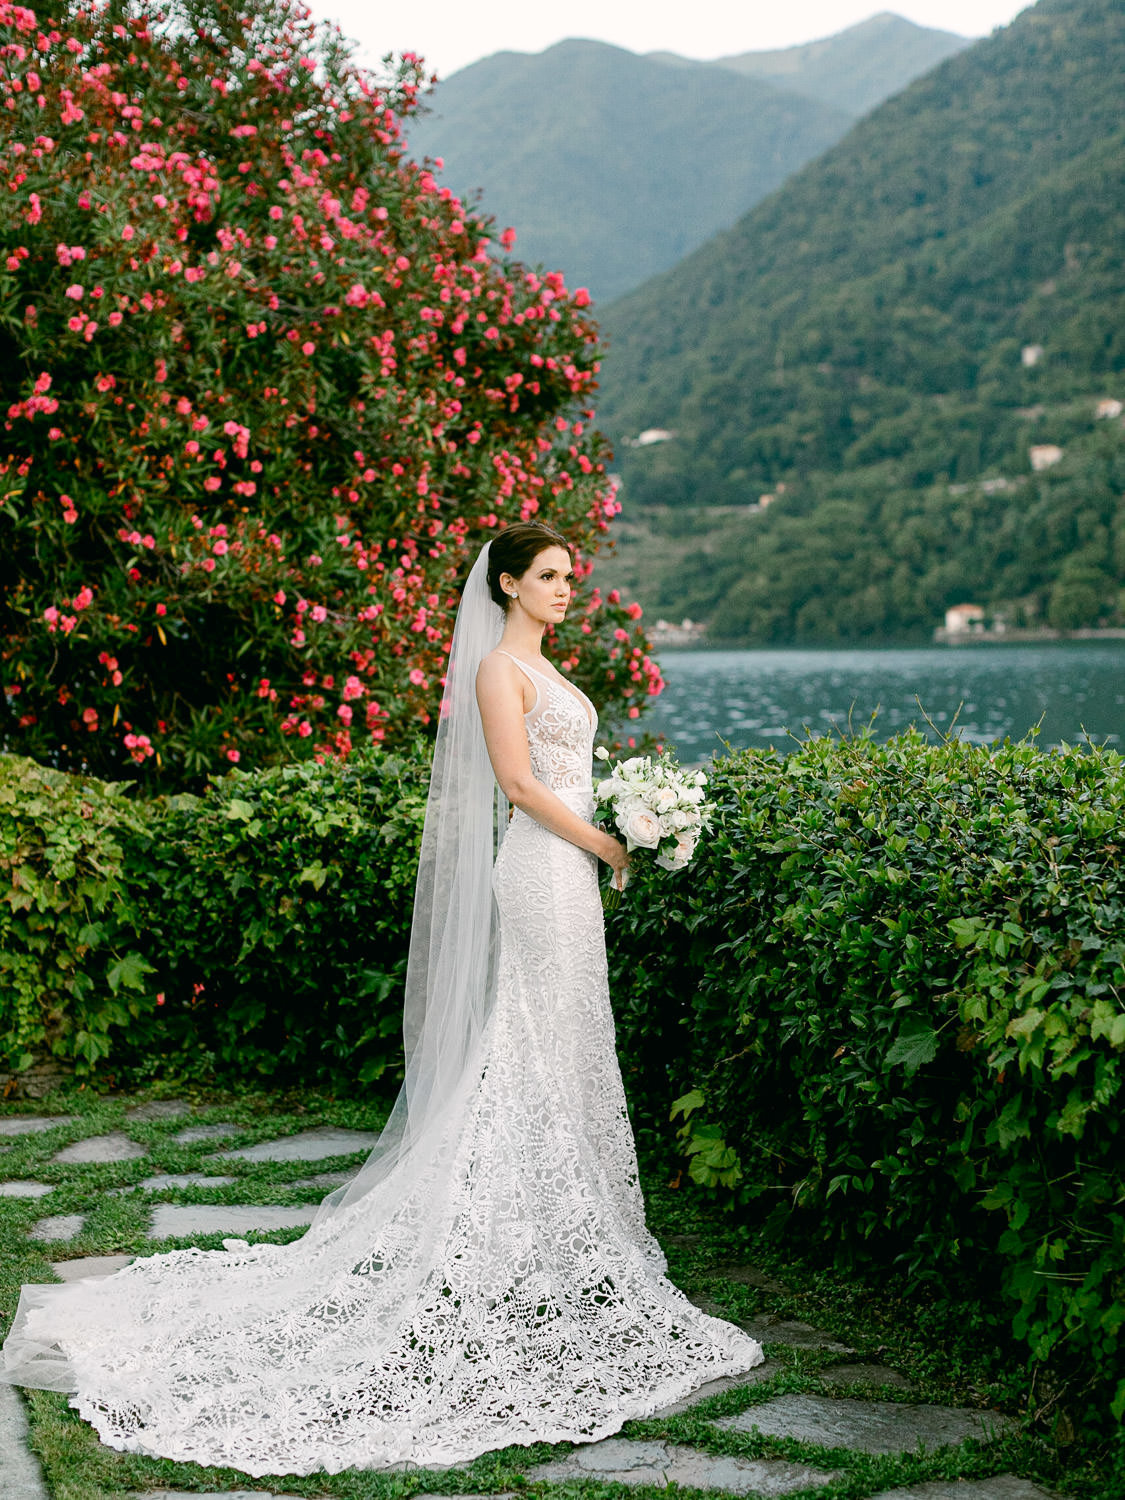 Bride in wedding dress holding bouquet standing by lake Como shore